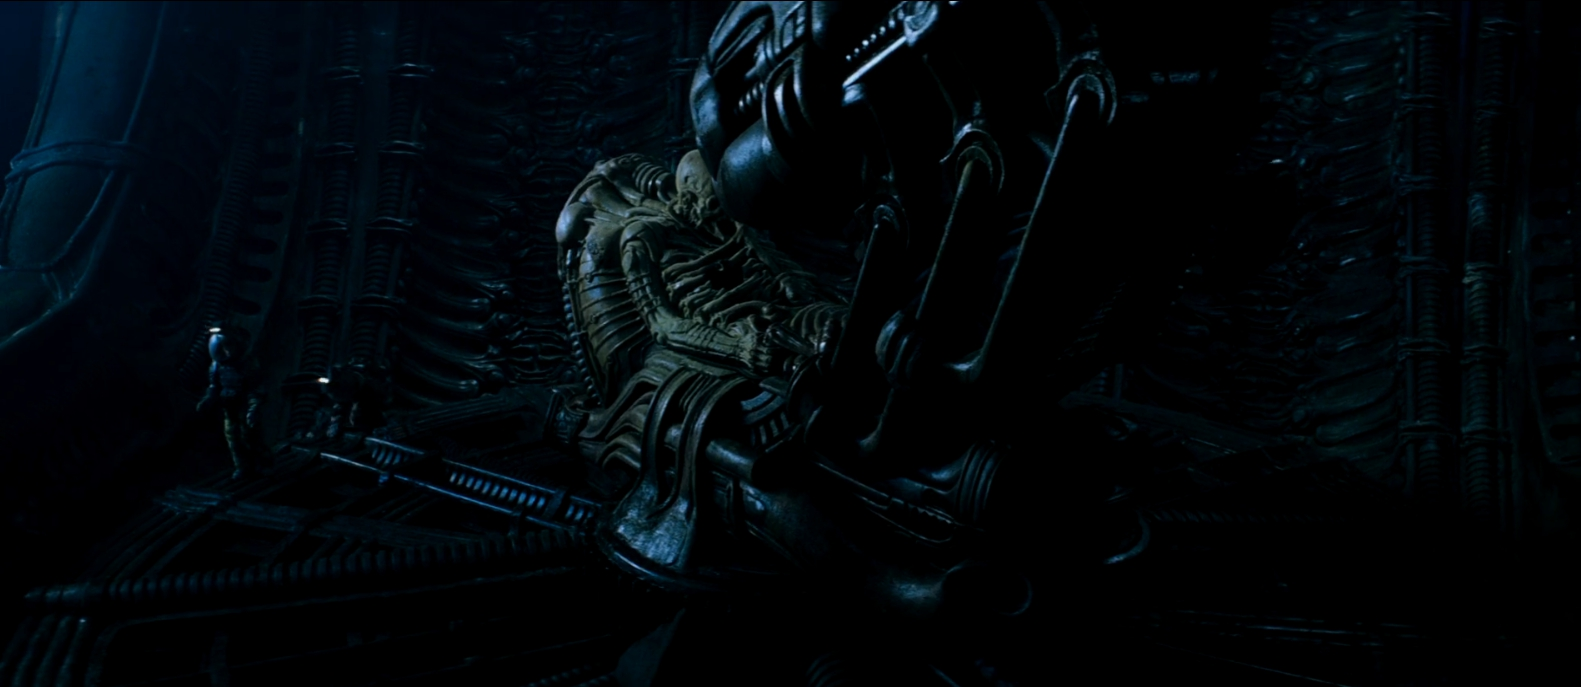 Alien Movie Review